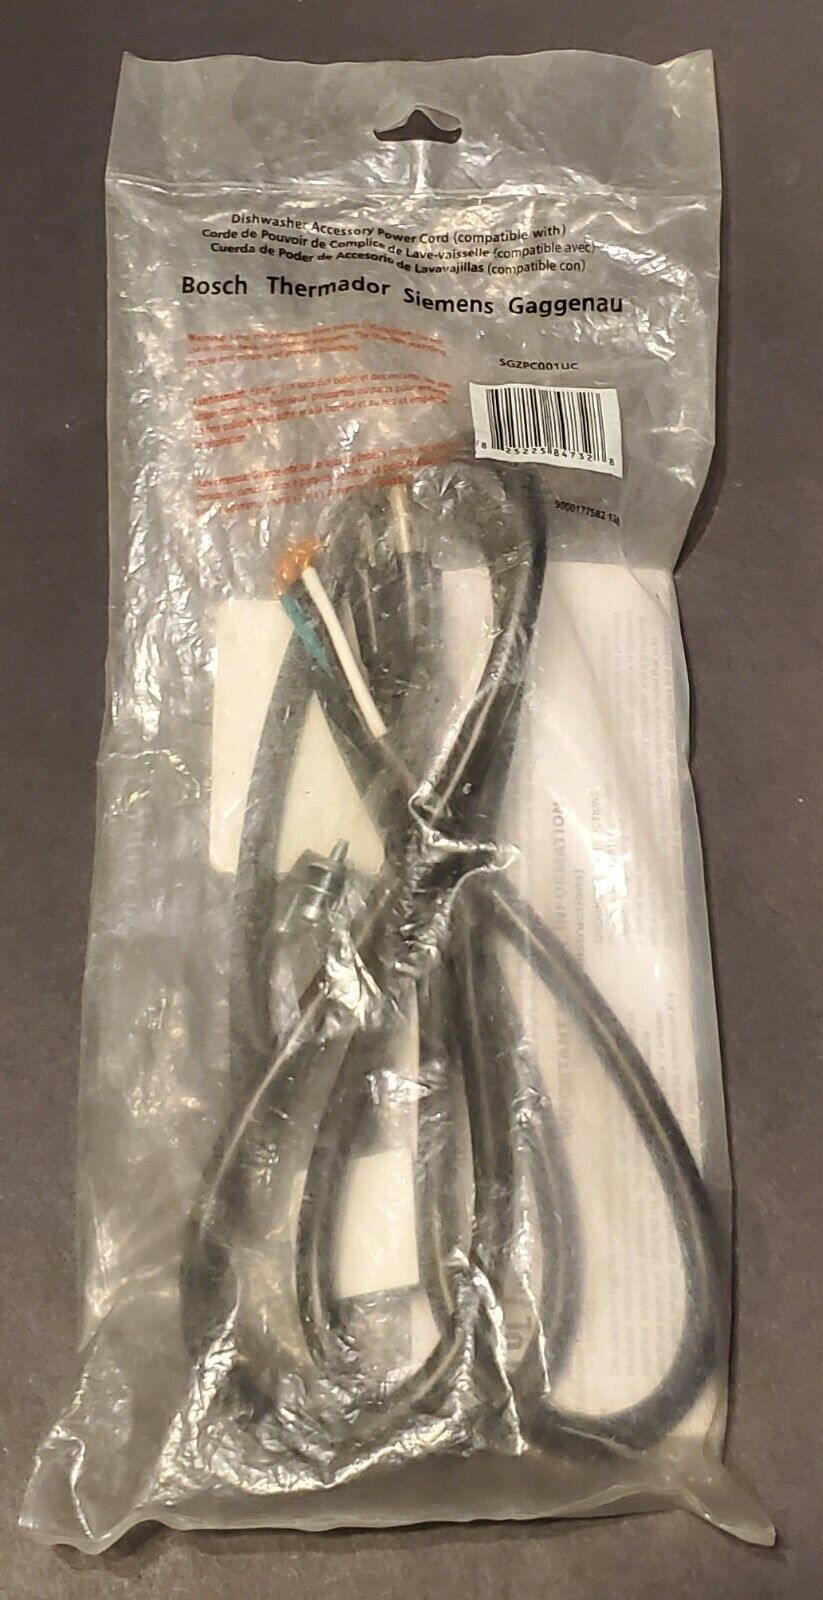 Bosch SGZPC001UC Dishwasher Power Cord with Connectors